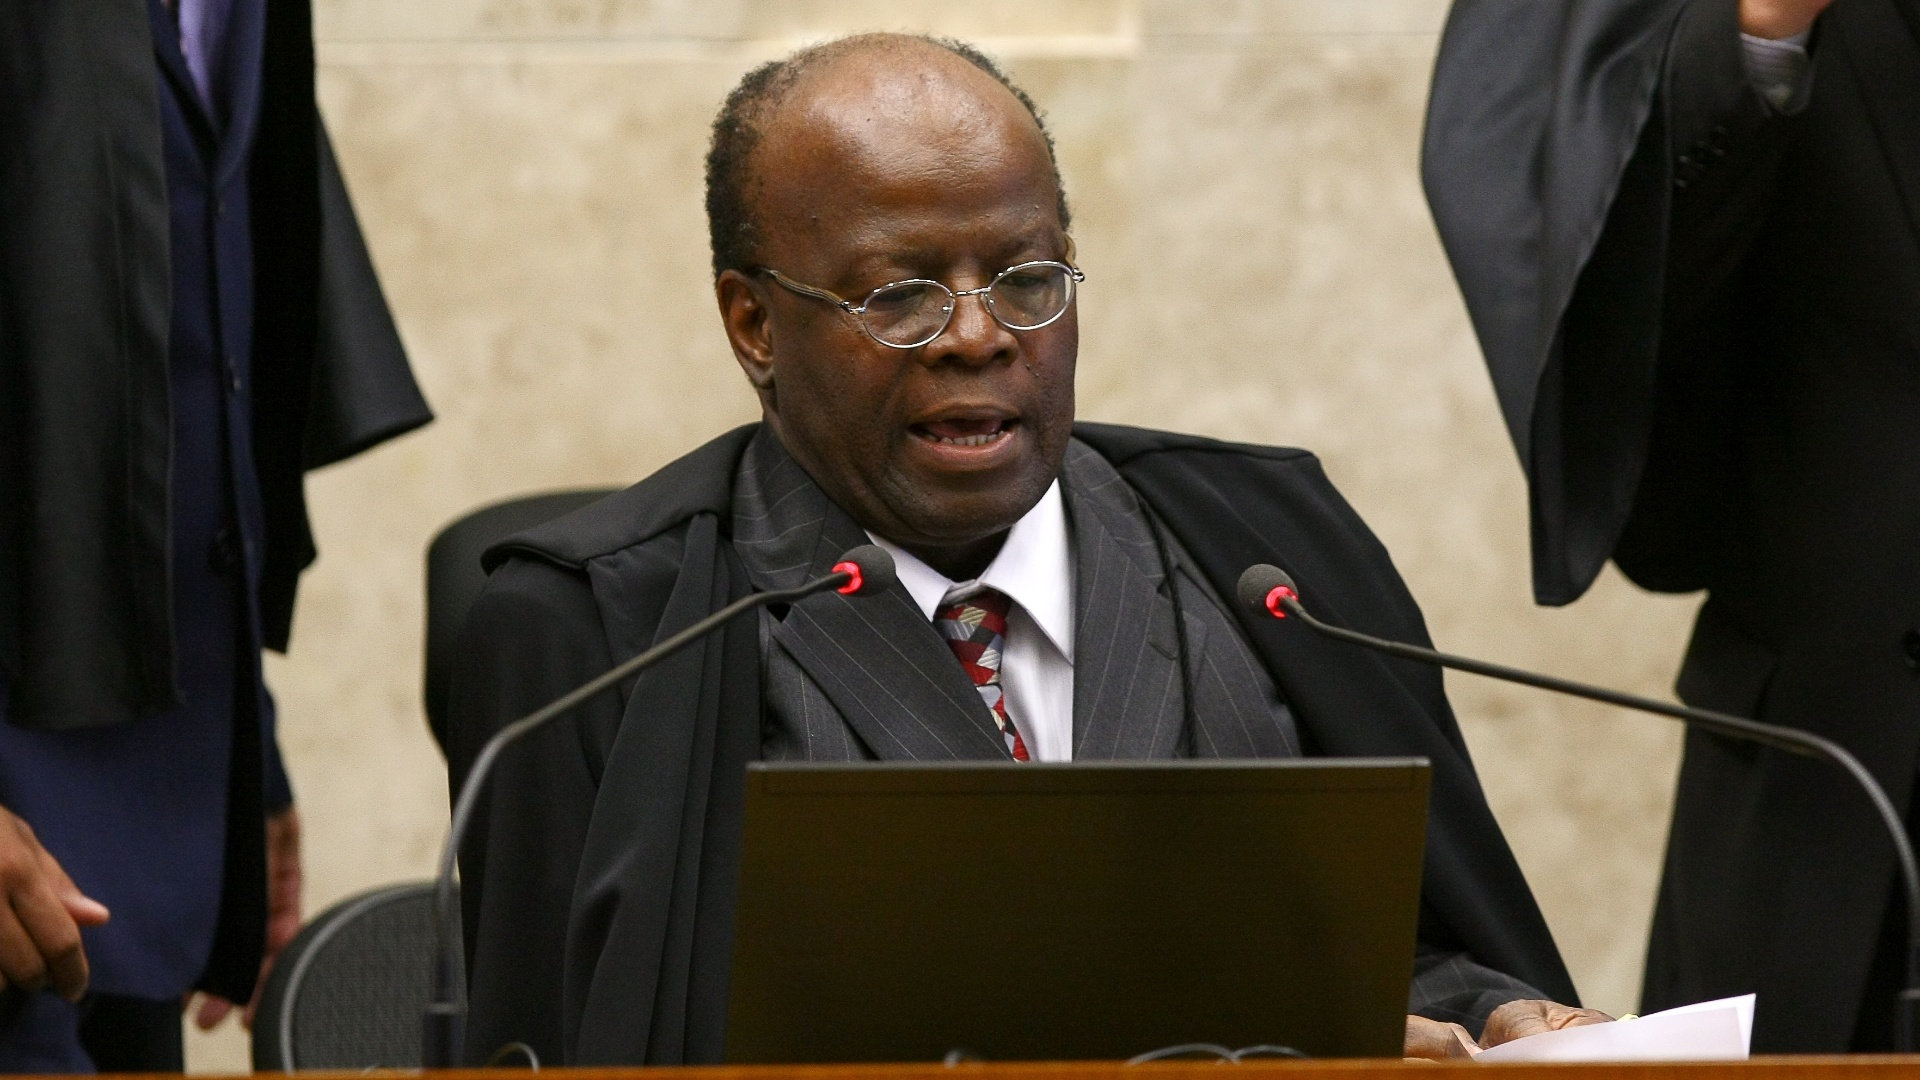 6.dez.2012 - O presidente do STF, ministro Joaquim Barbosa, participa de sesso de julgamento do mensalo. Nesta quinta-feira (6), Barbosa deixou o plenrio no intervalo da sesso para ir ao velrio do arquiteto Oscar Niemeyer, no Palcio do Planalto